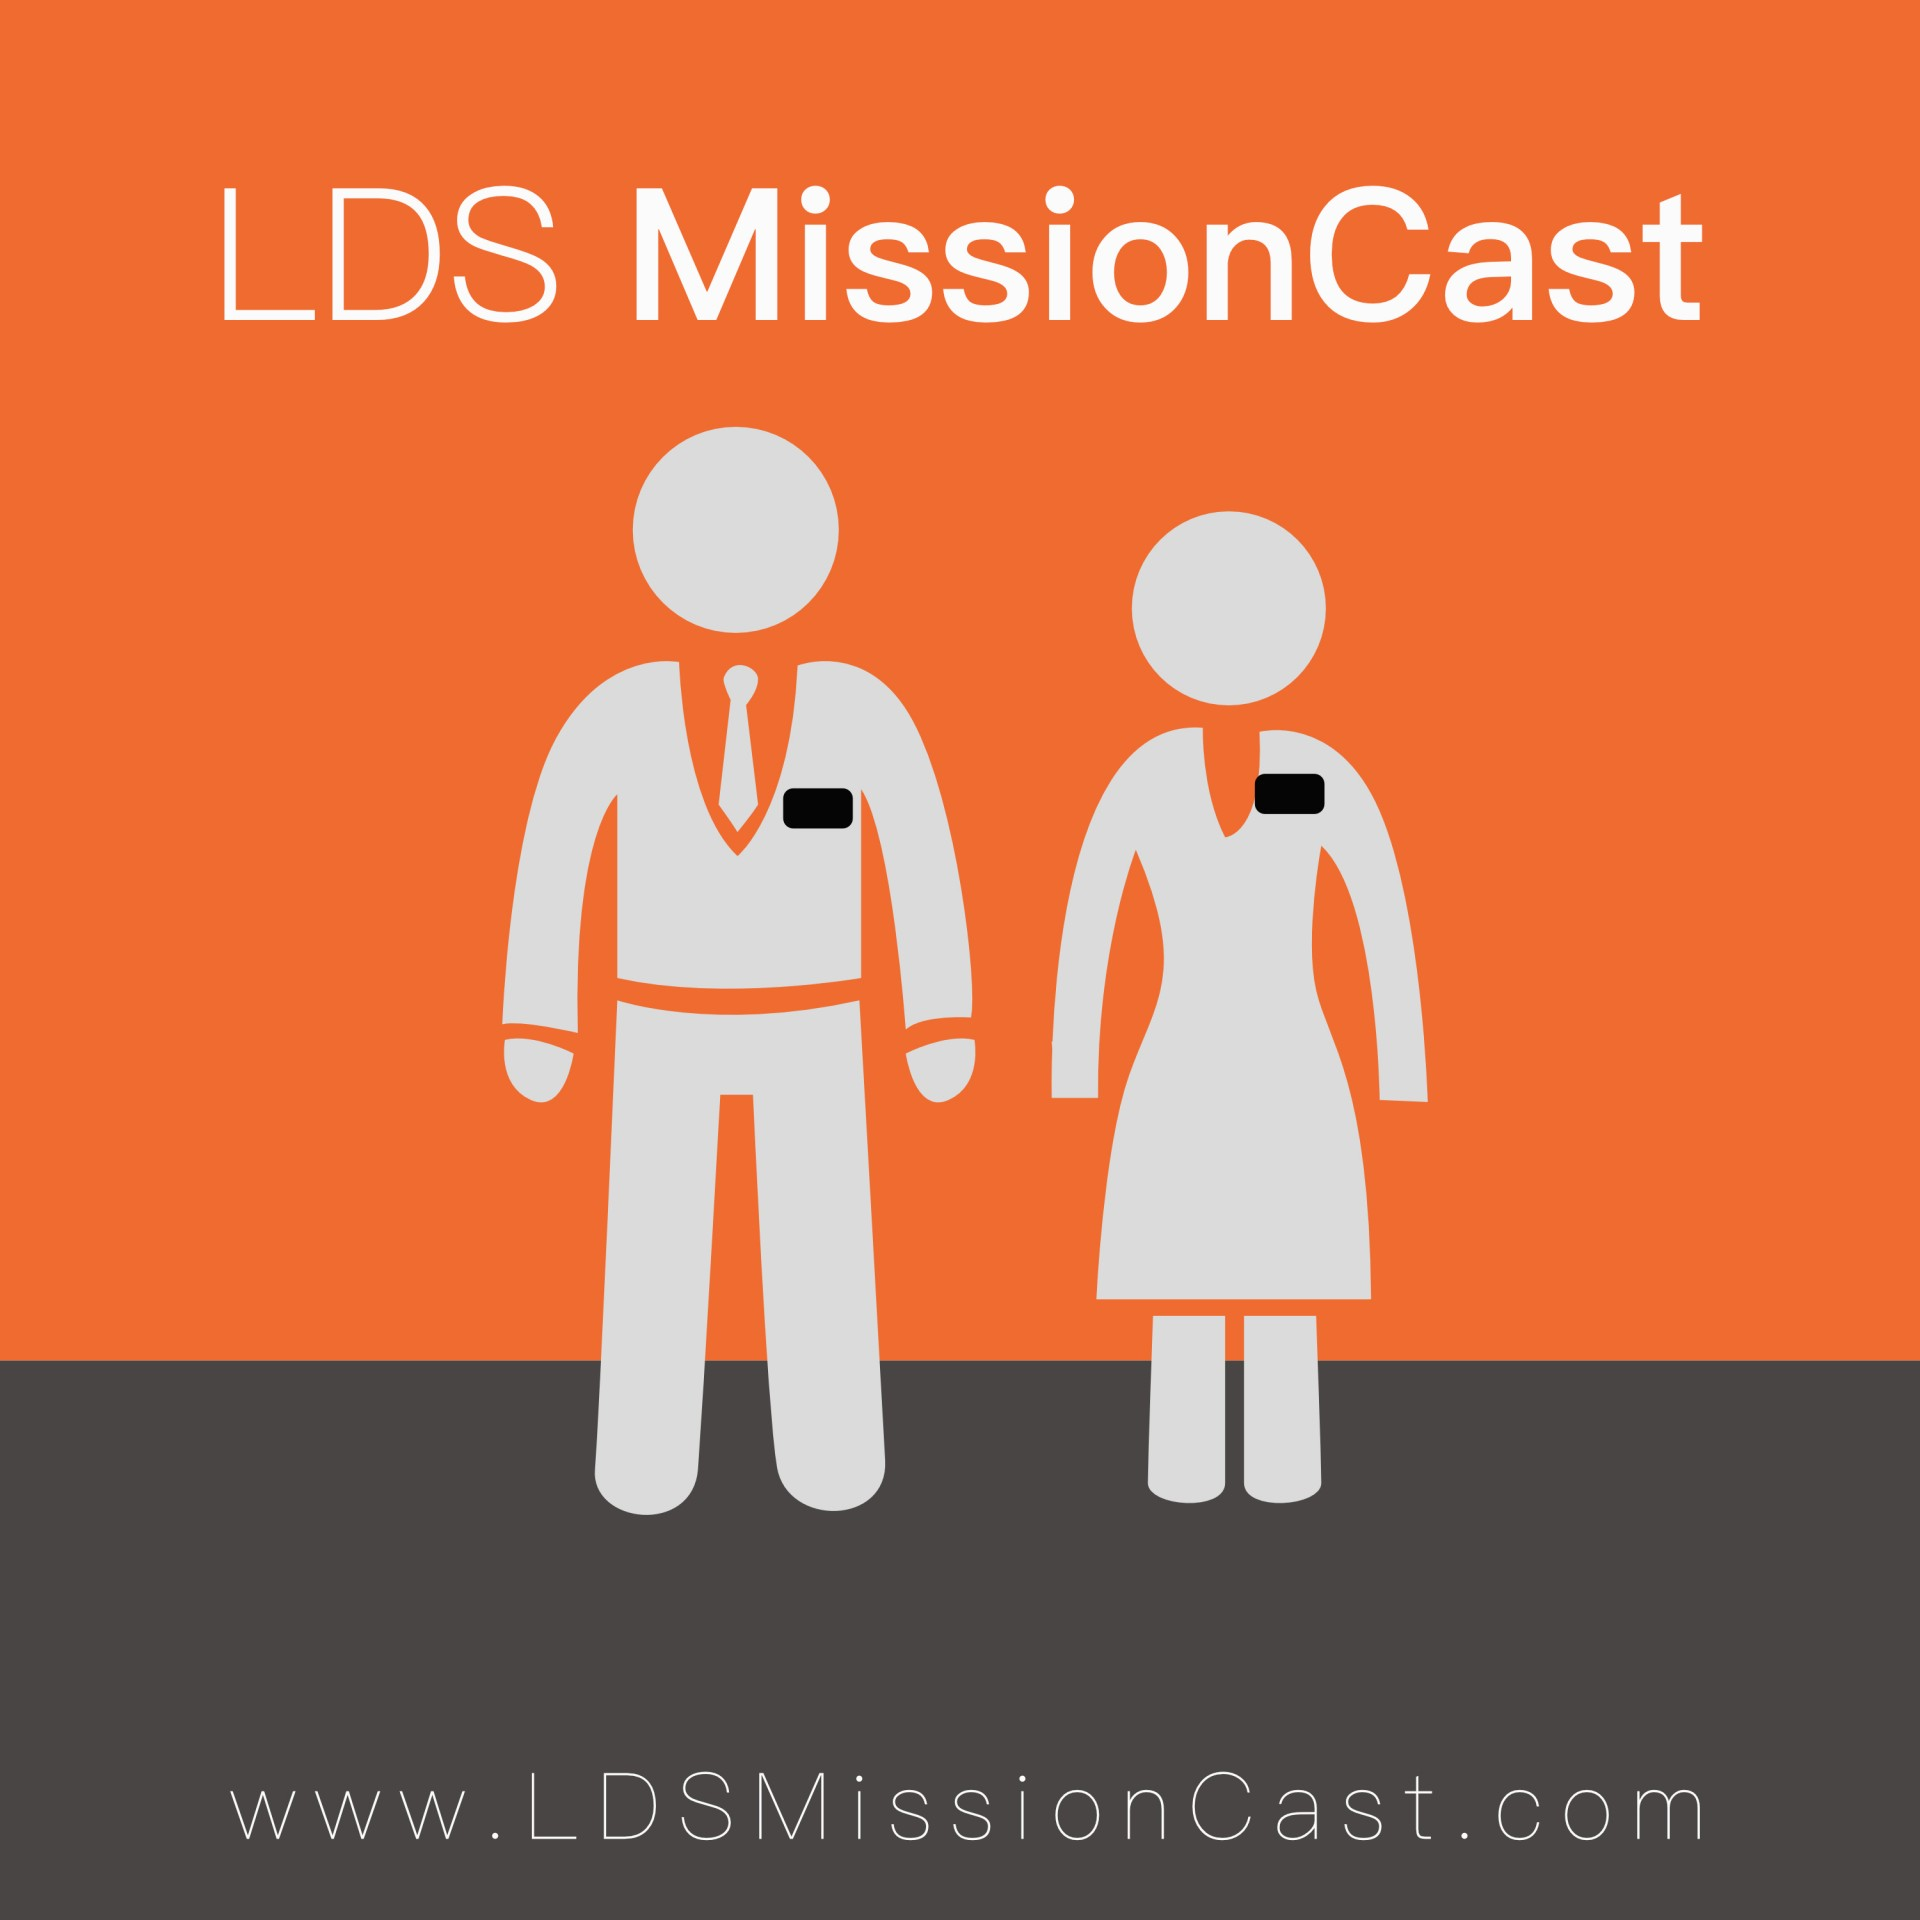 022 Lds Missioncast Podcast Logo Essay Example Org Wondrous Essays Lds.org On Polygamy 1920